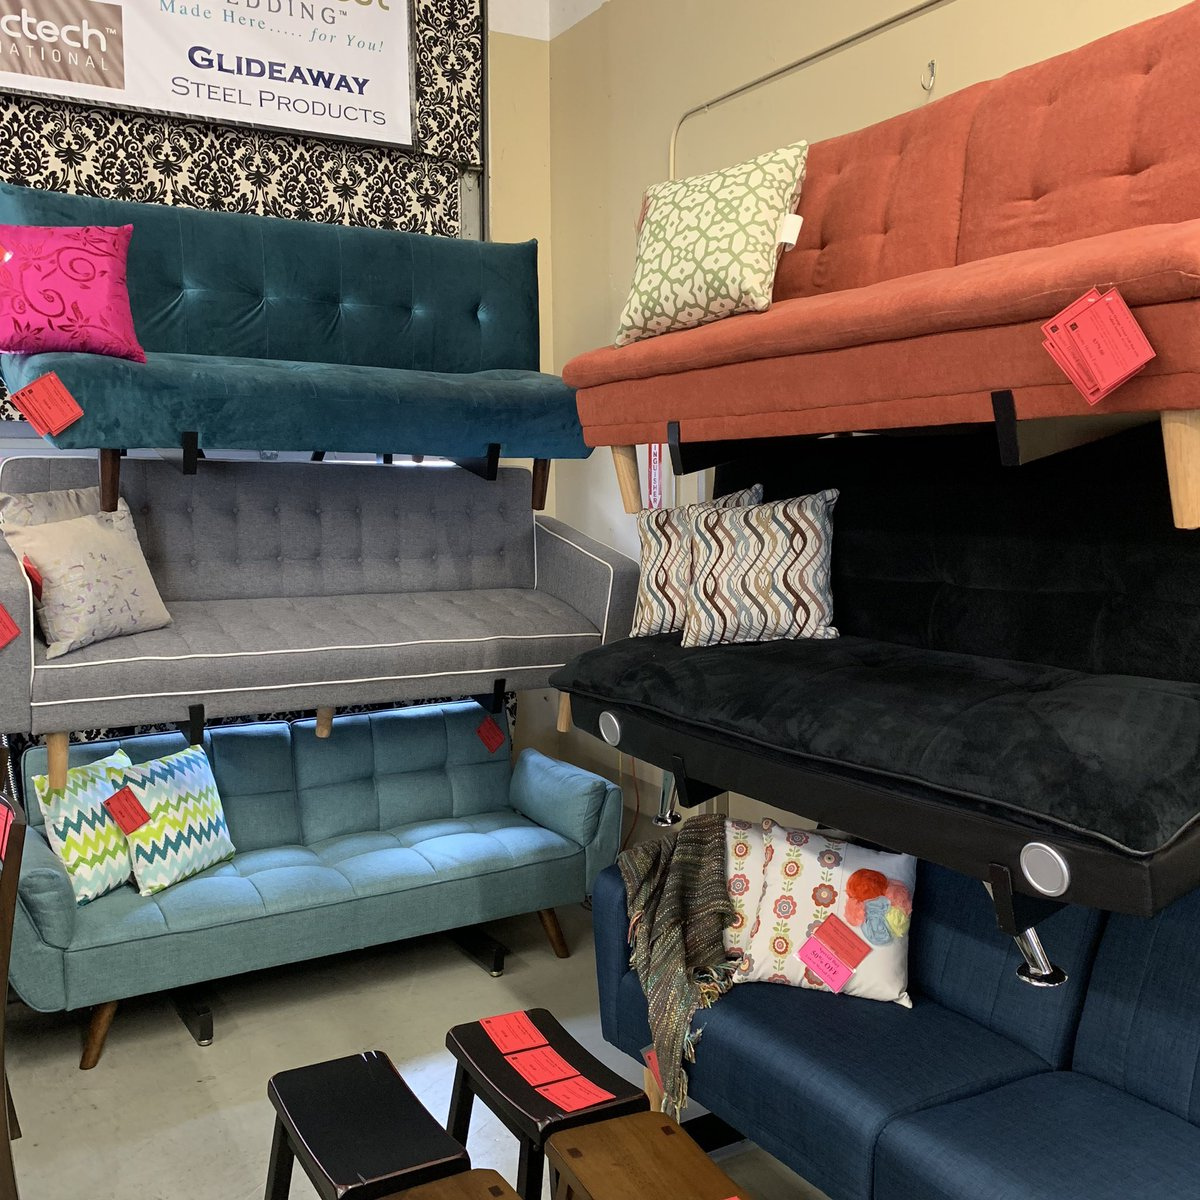 All Starting At 10 Off Http Bit Ly 2qntld8 Furniture Sofabeds Interiordesign Futons Mcminnville Localpic Twitter N0q4k9e8pu